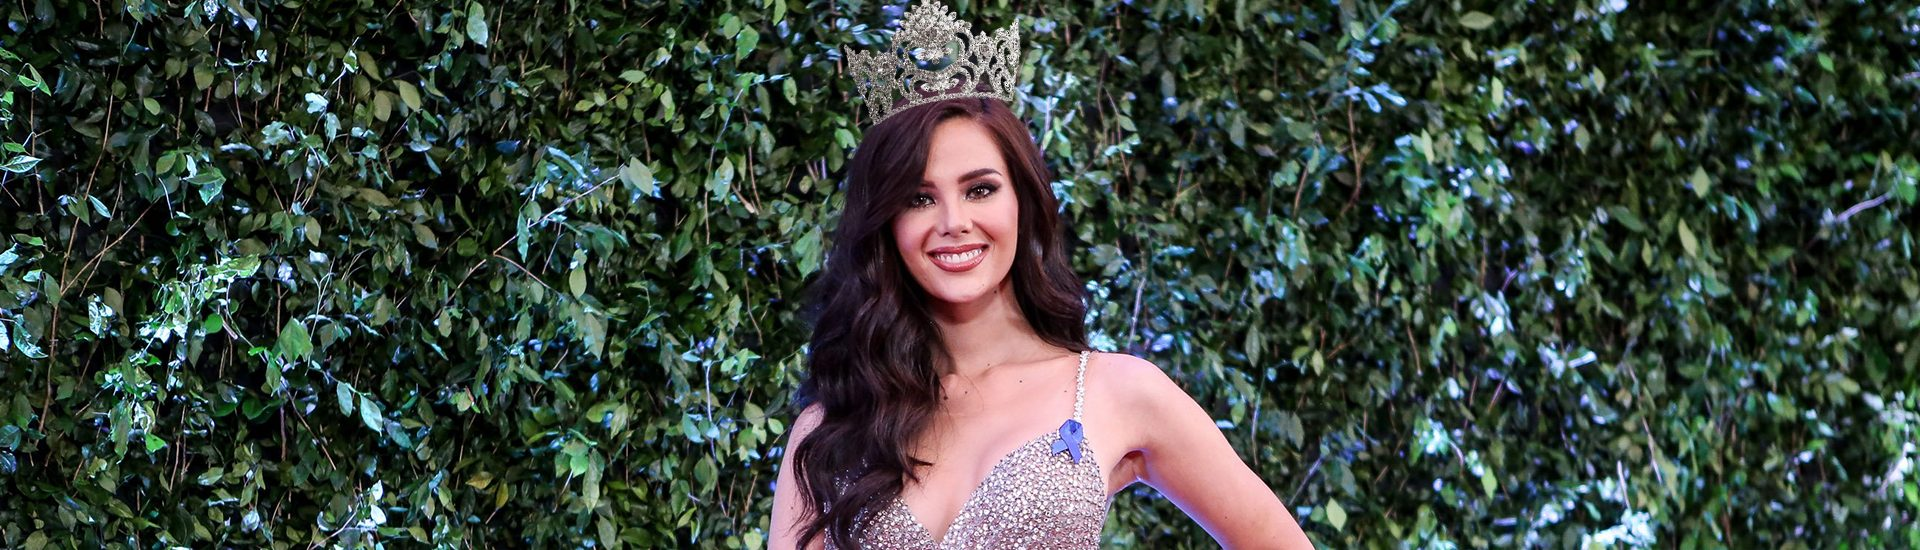 Catriona Gray, Miss Universo 2018